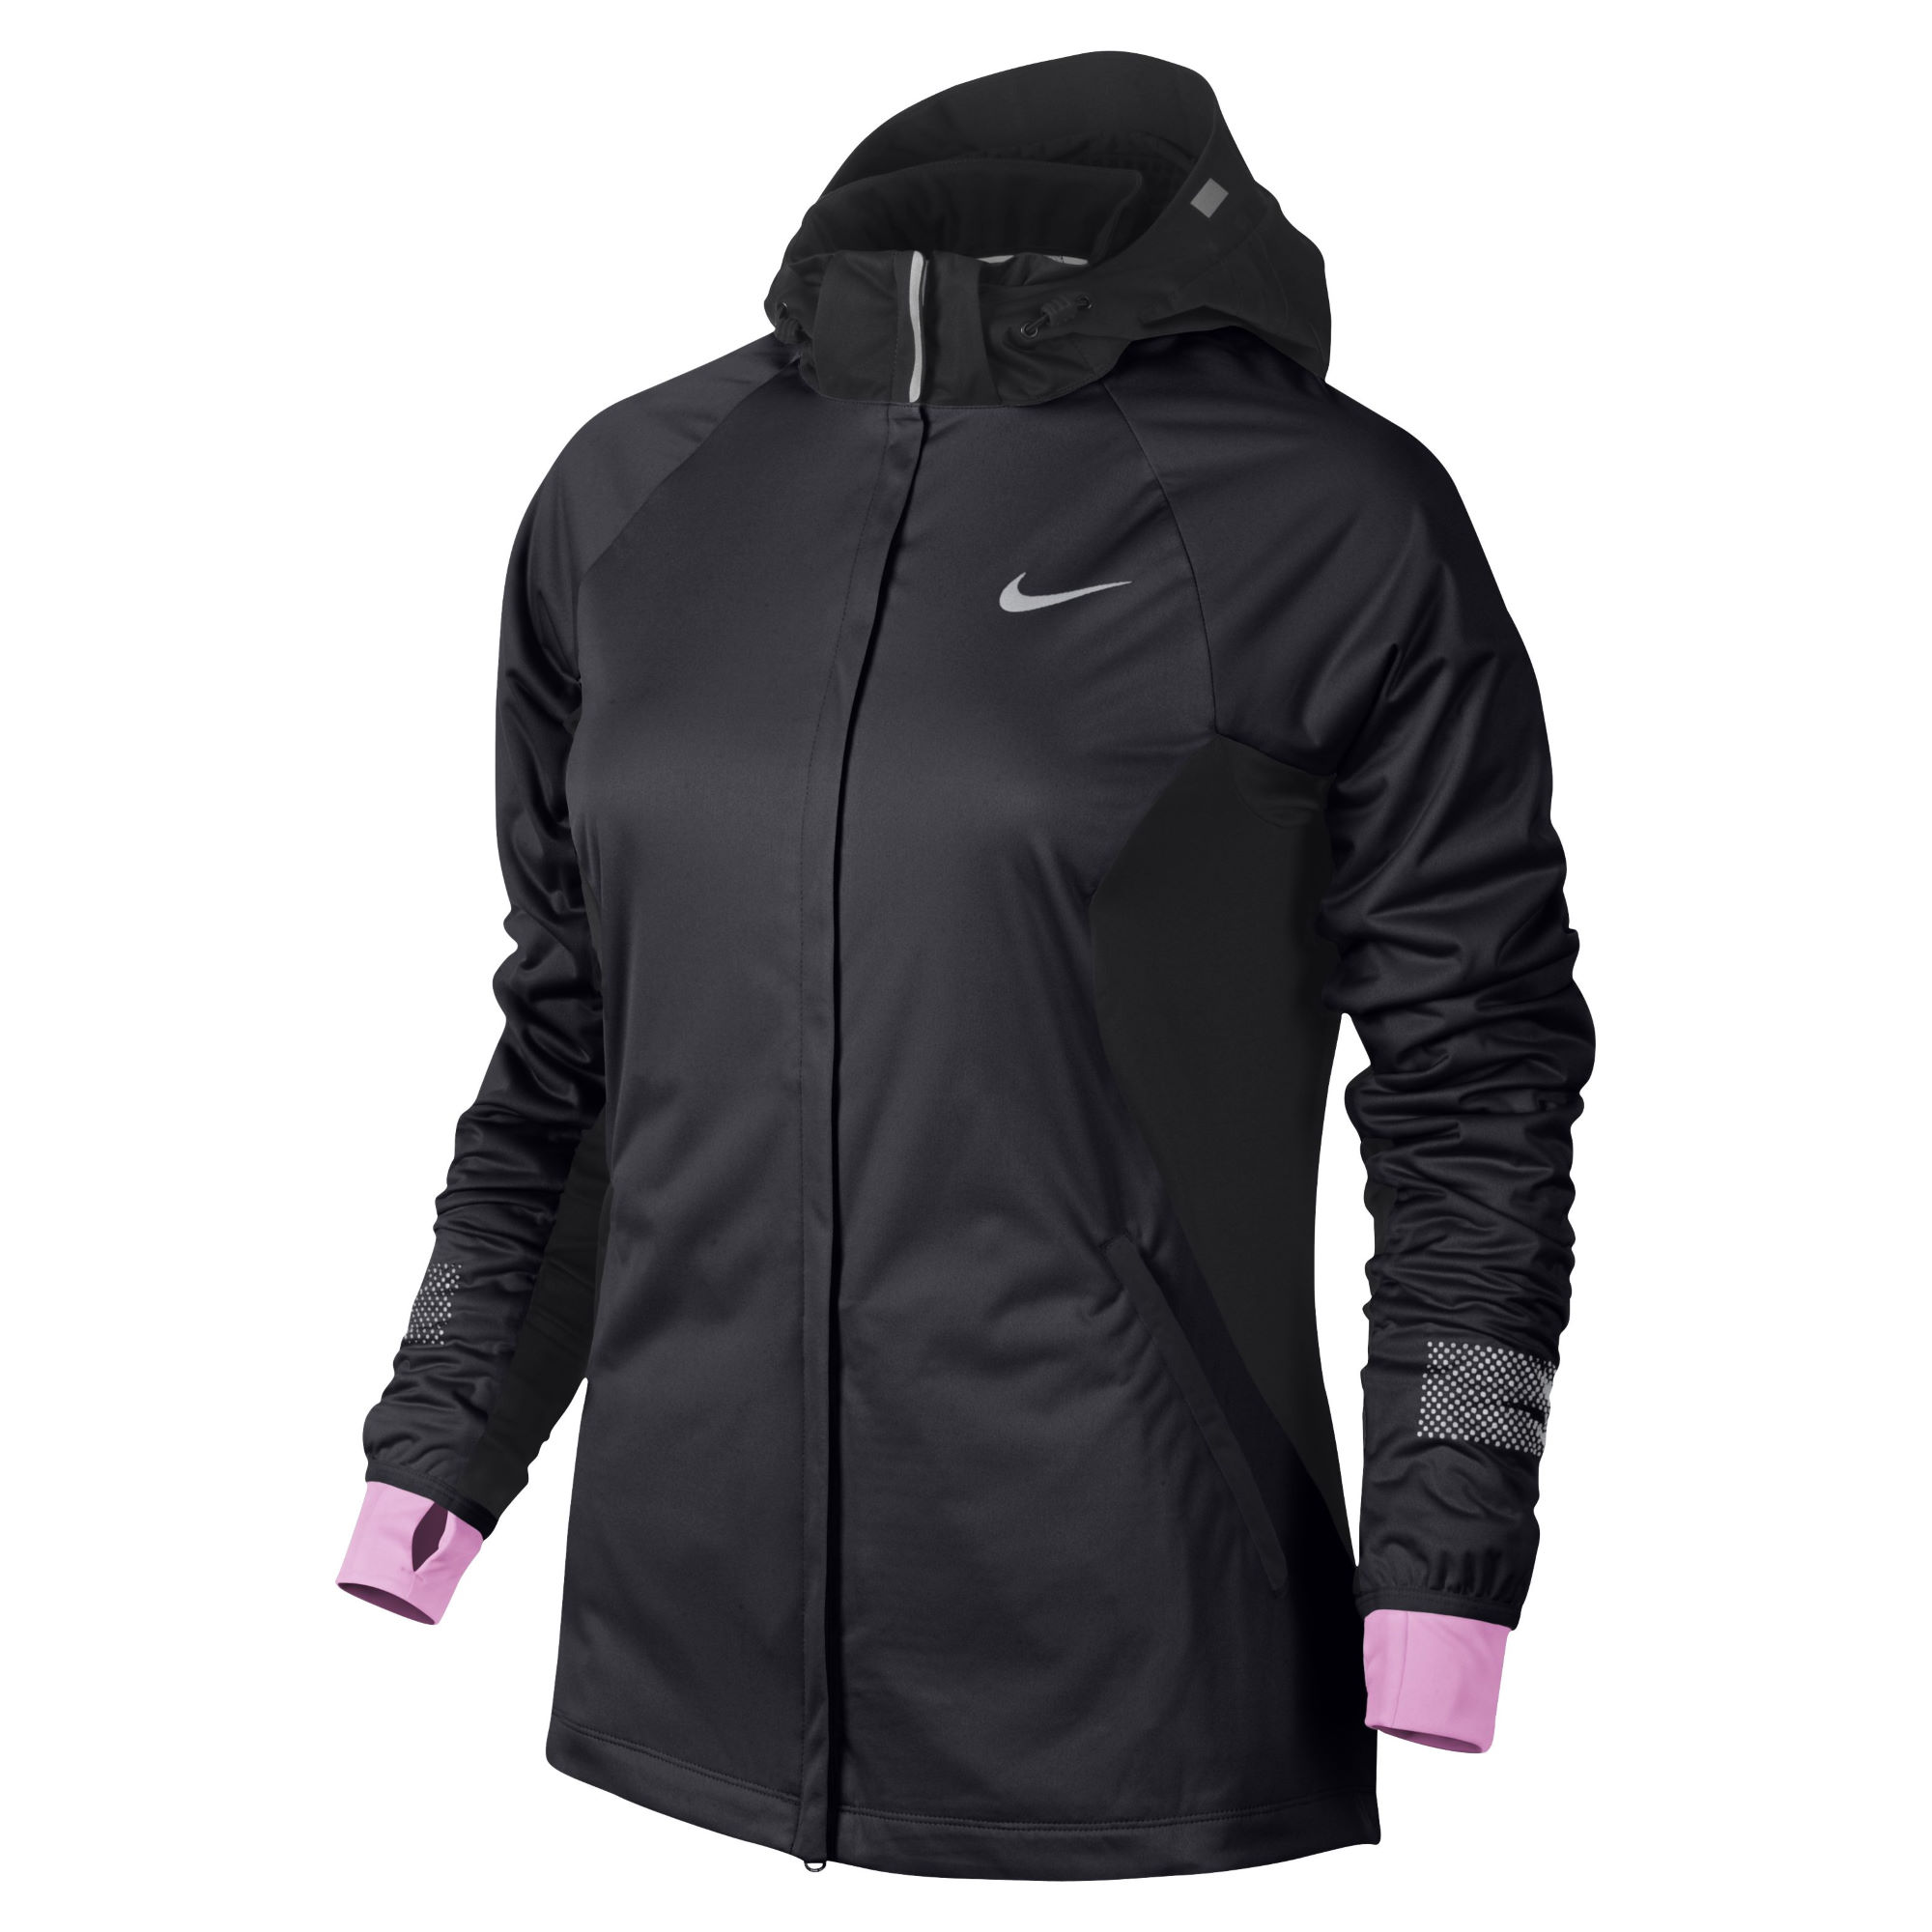 vestes de running coupe vent nike women 39 s shield max do not use wiggle france. Black Bedroom Furniture Sets. Home Design Ideas